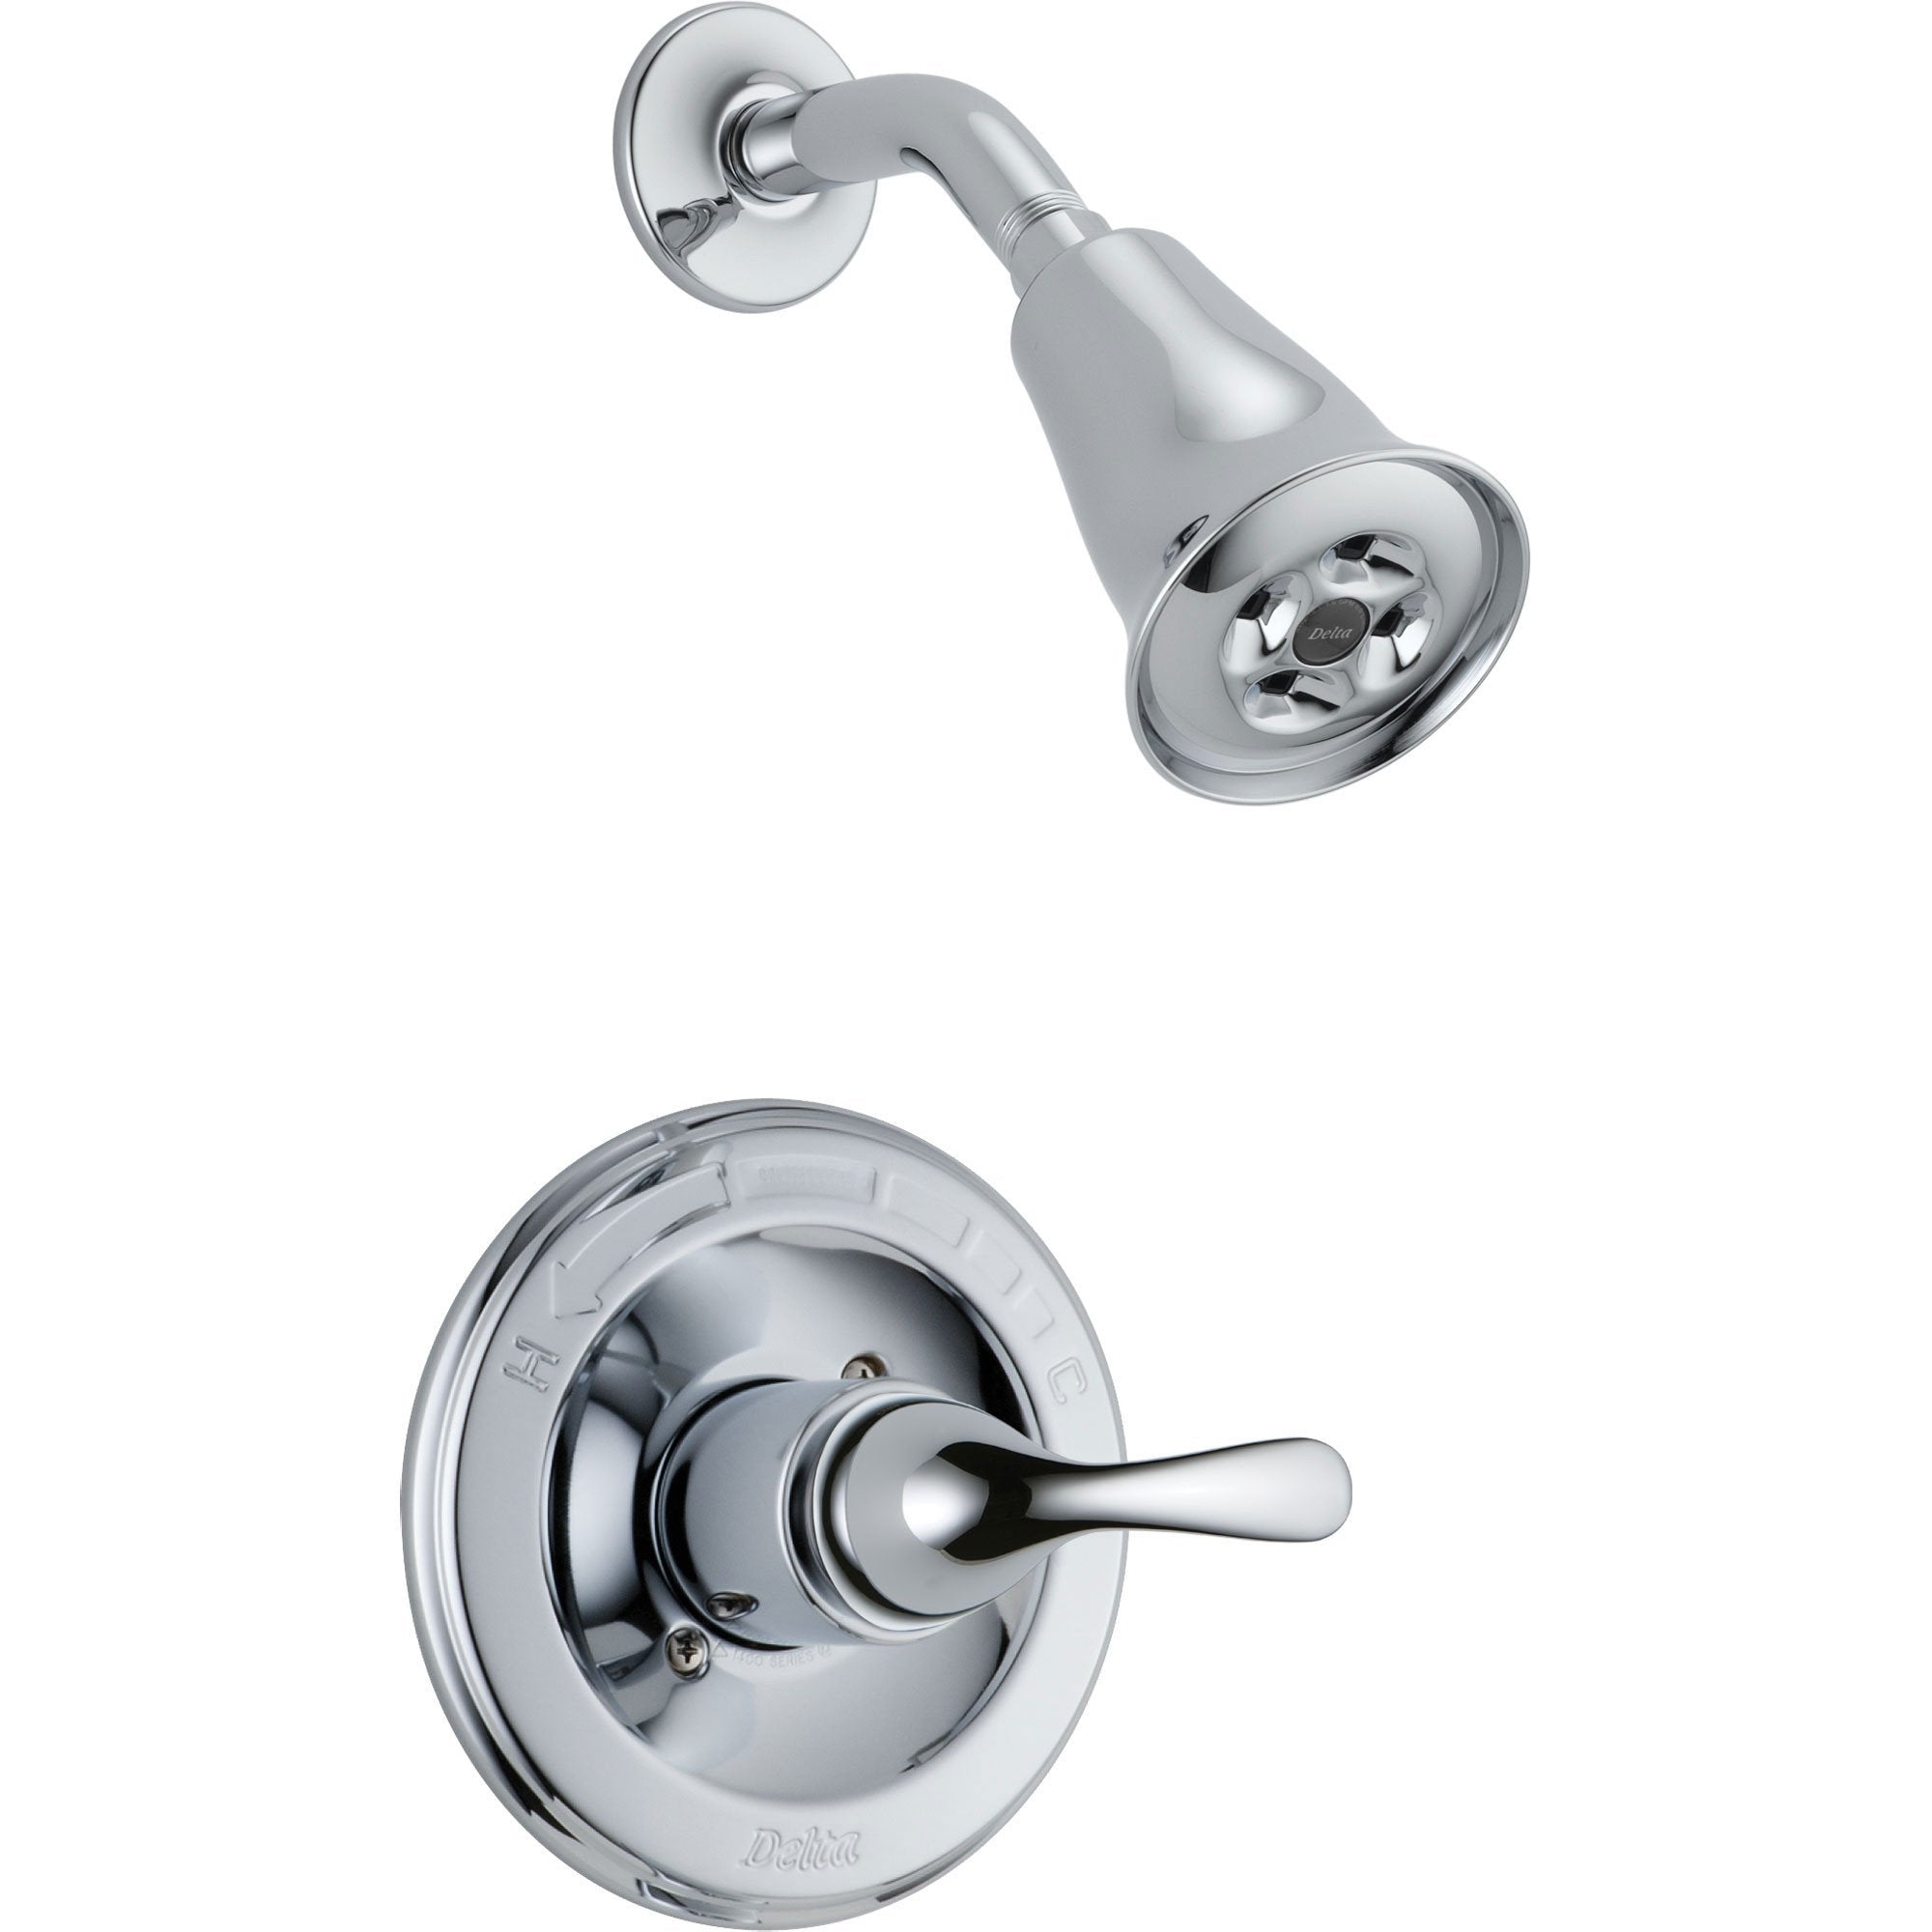 Delta Classic Chrome Single Handle Shower Only Faucet Includes Valve D556V